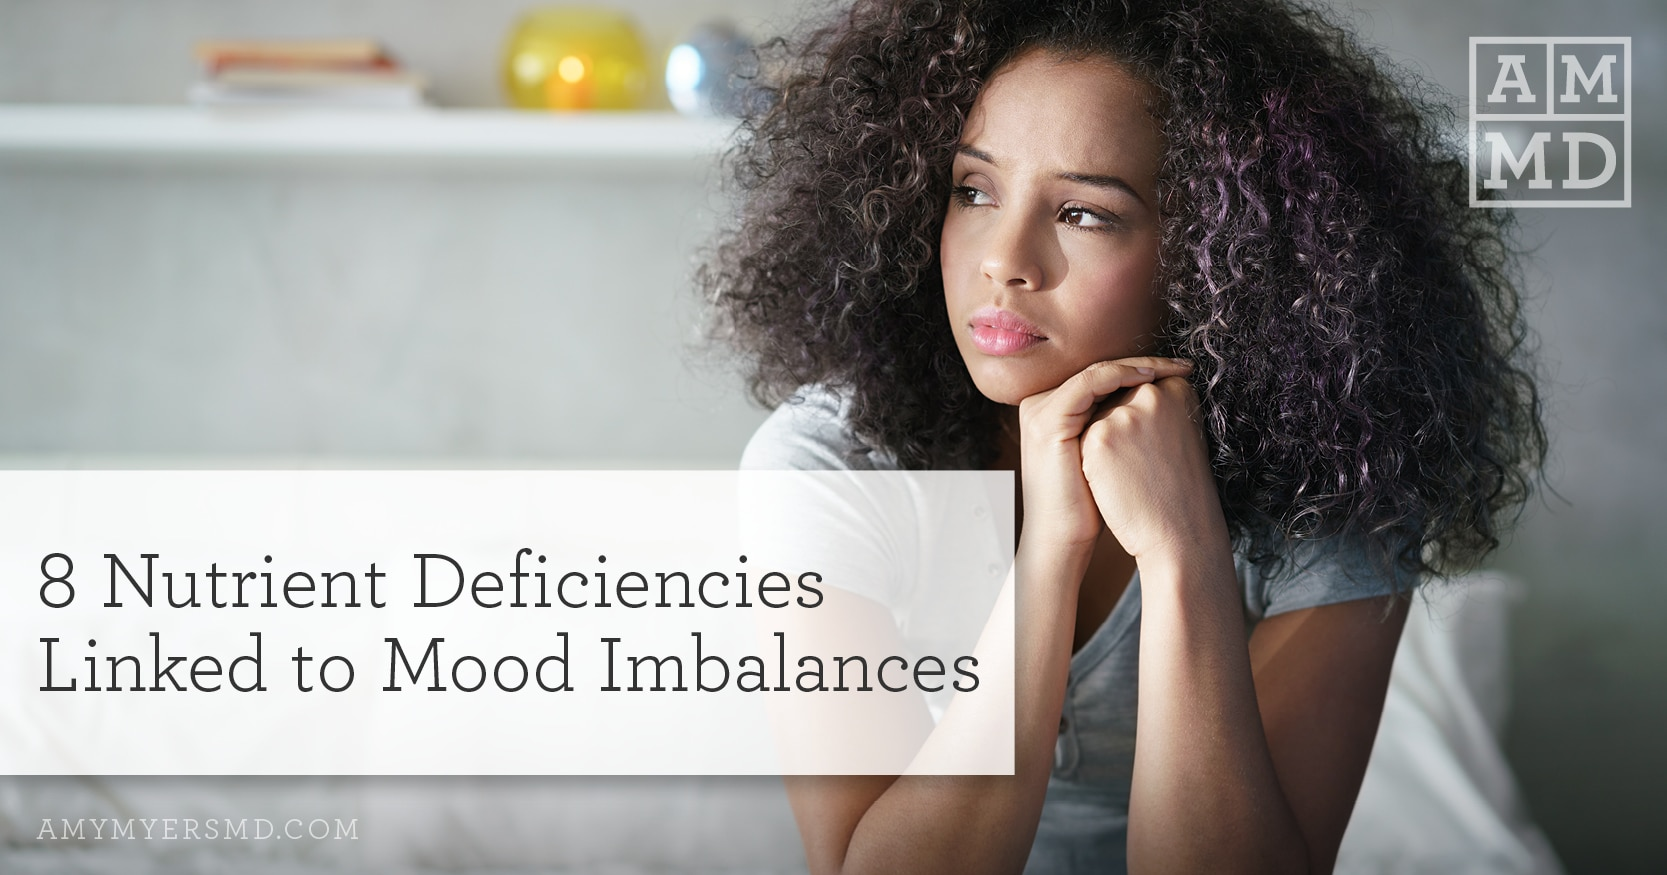 8 Nutrient Deficiencies Linked to Mood Imbalances - Woman Thinking - Amy Myers MD